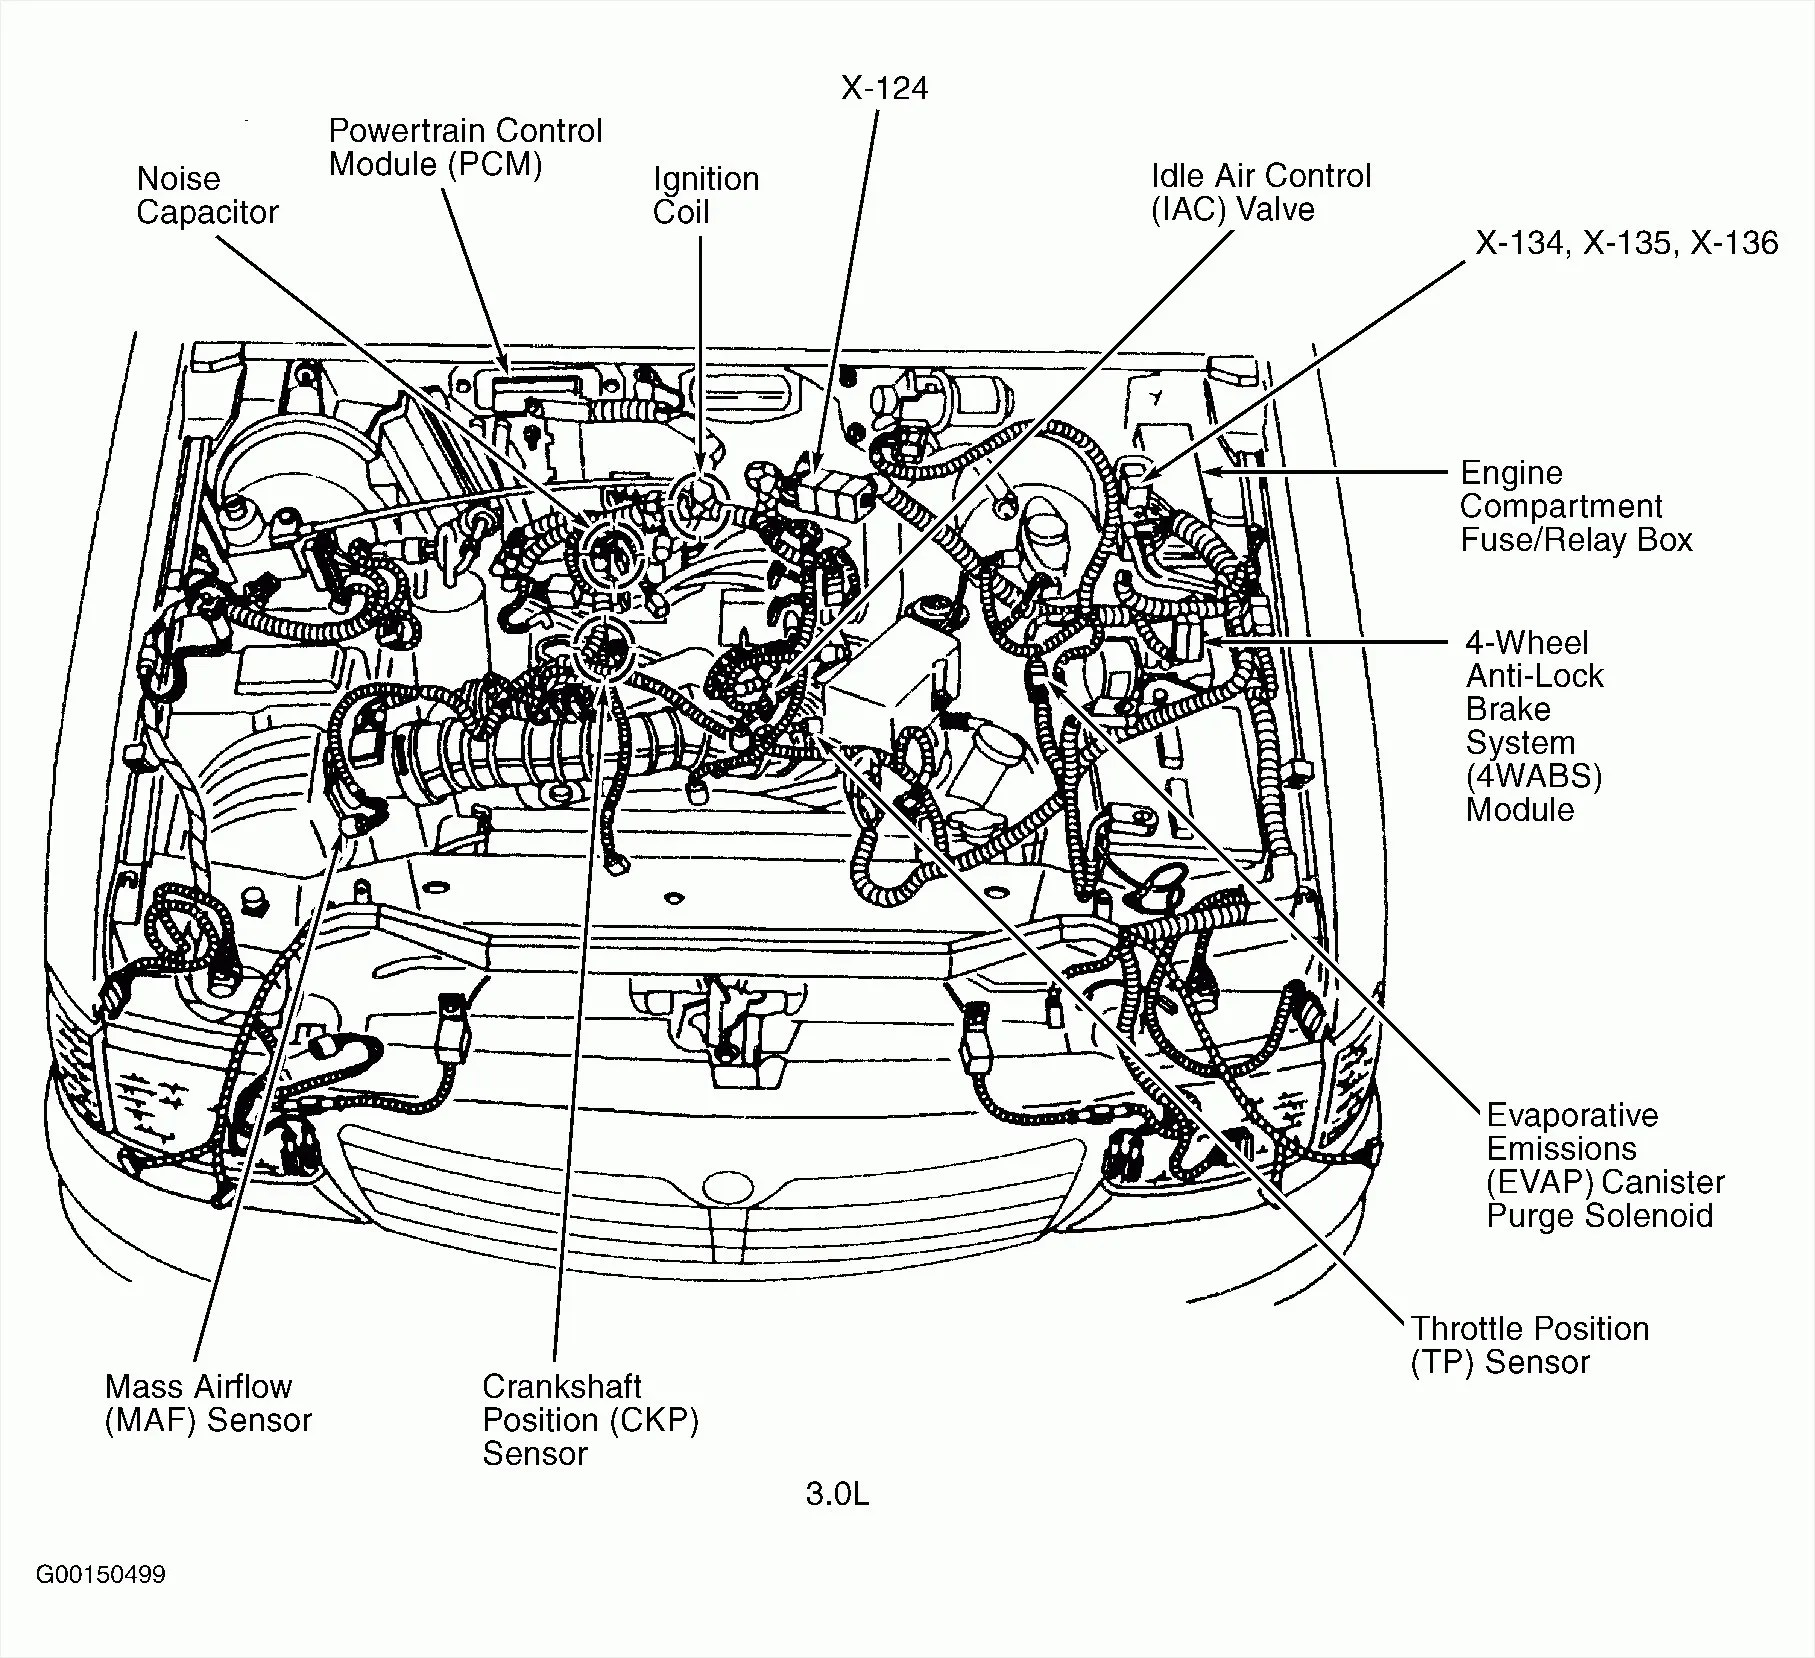 hight resolution of 1993 chevy corsica a c diagram wiring schematic wiring diagram 1992 chevy corsica engine diagram